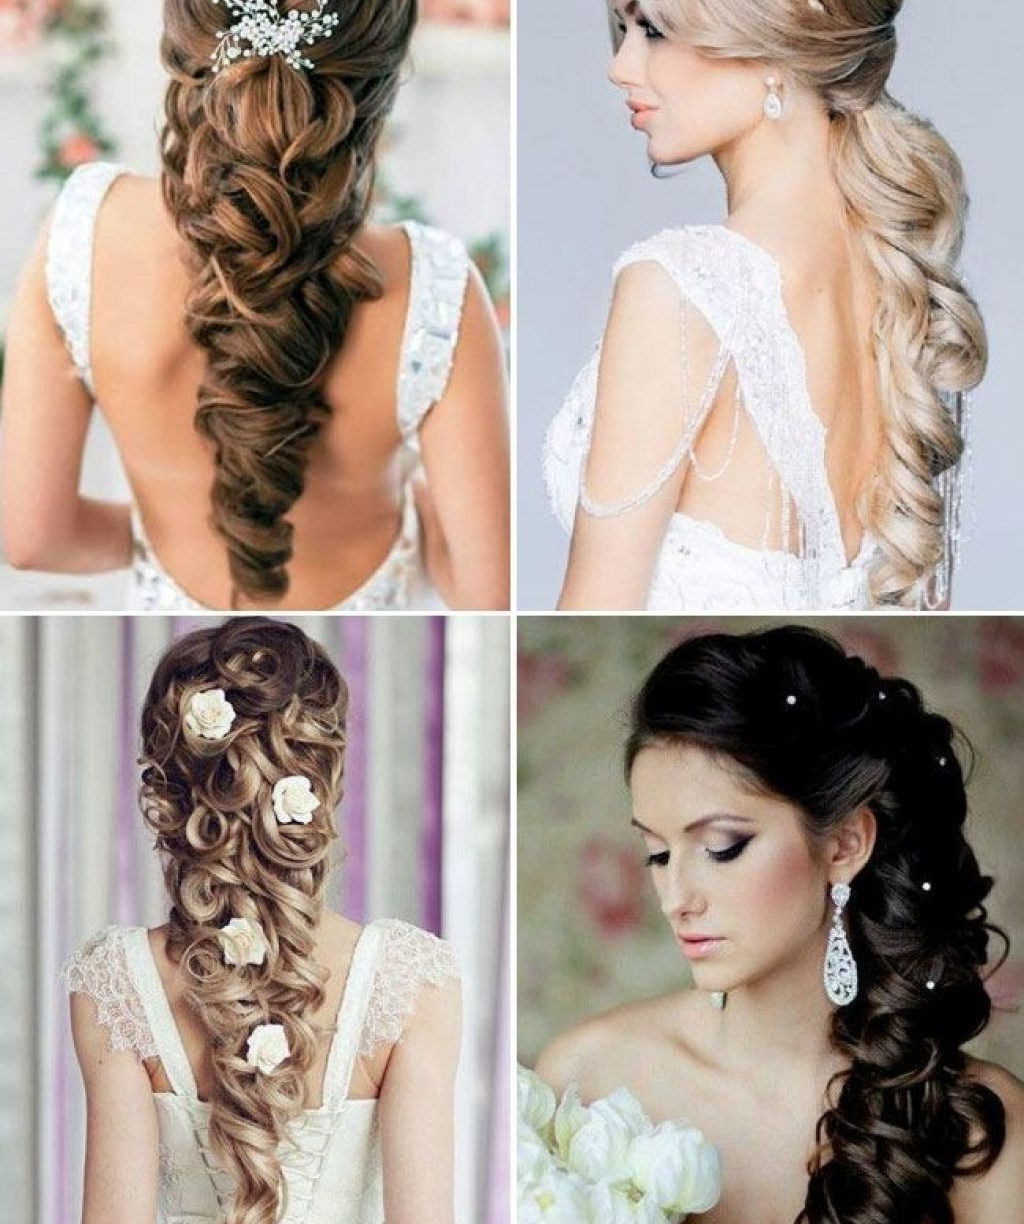 2017 Quick Wedding Hairstyles For Long Hair With Homecoming Hairstyles For Medium Length Hair Hairstyle Fodo (View 9 of 15)